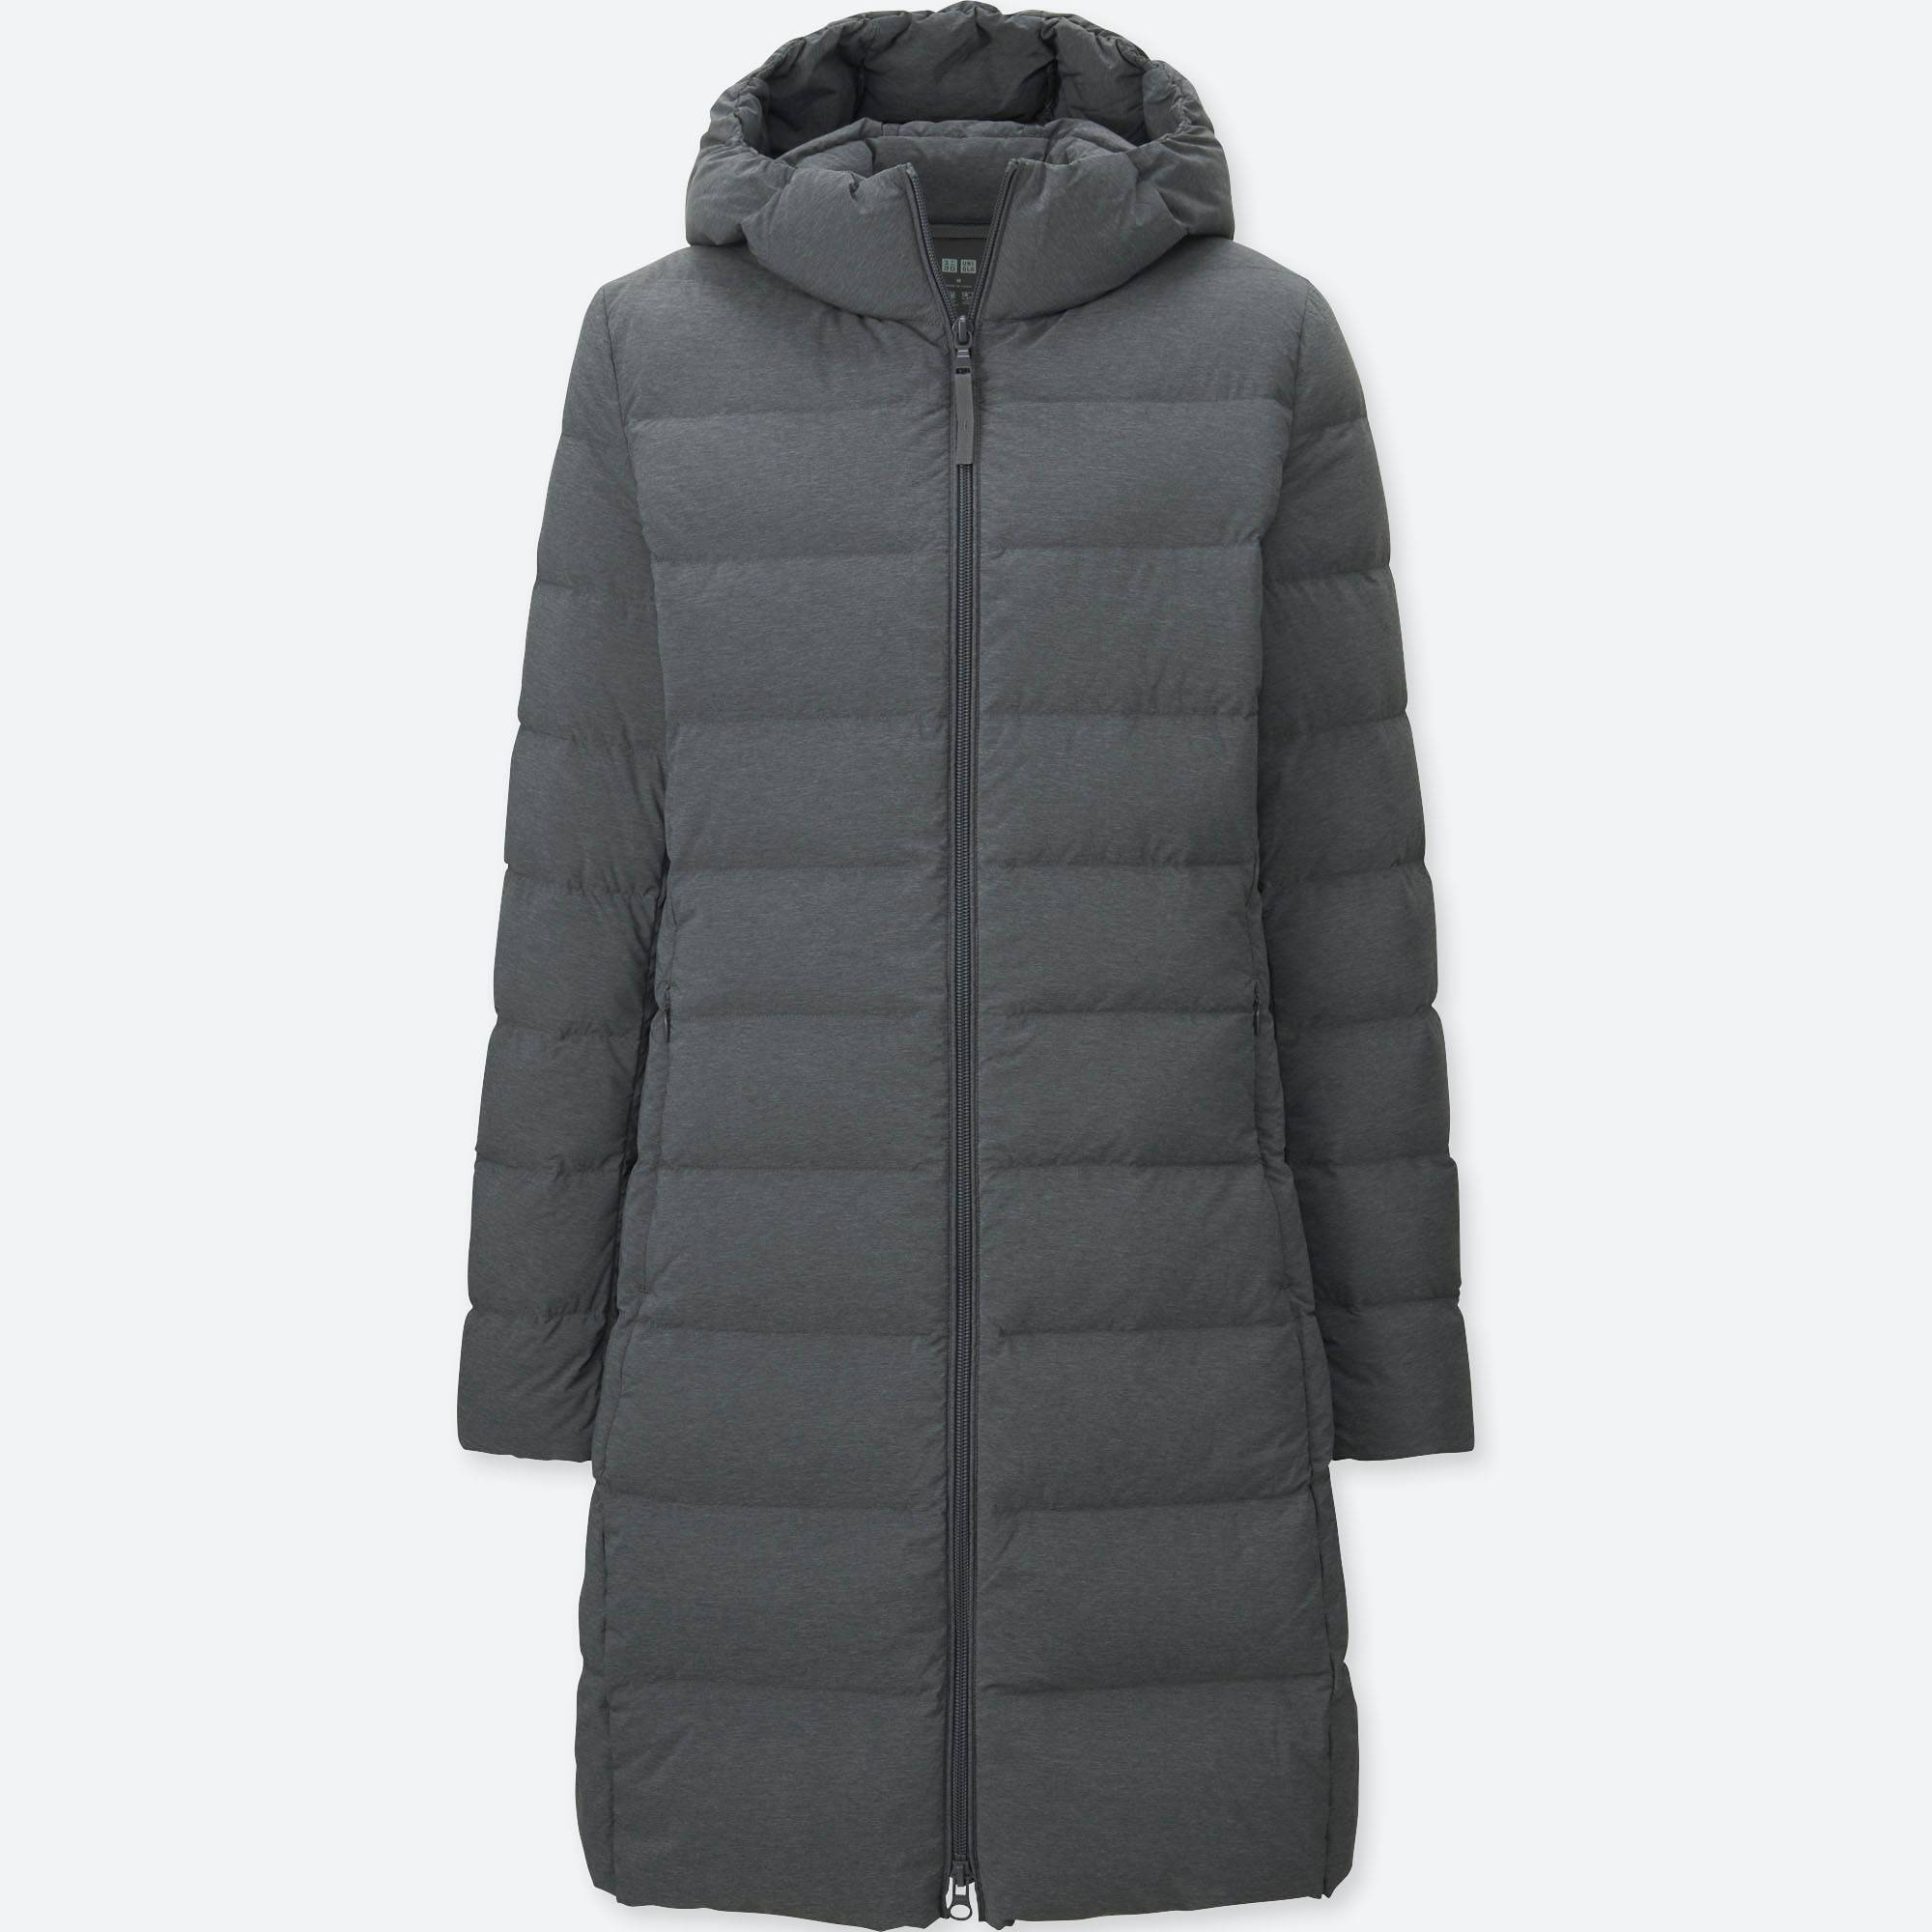 Down Hooded Coat Han Coats